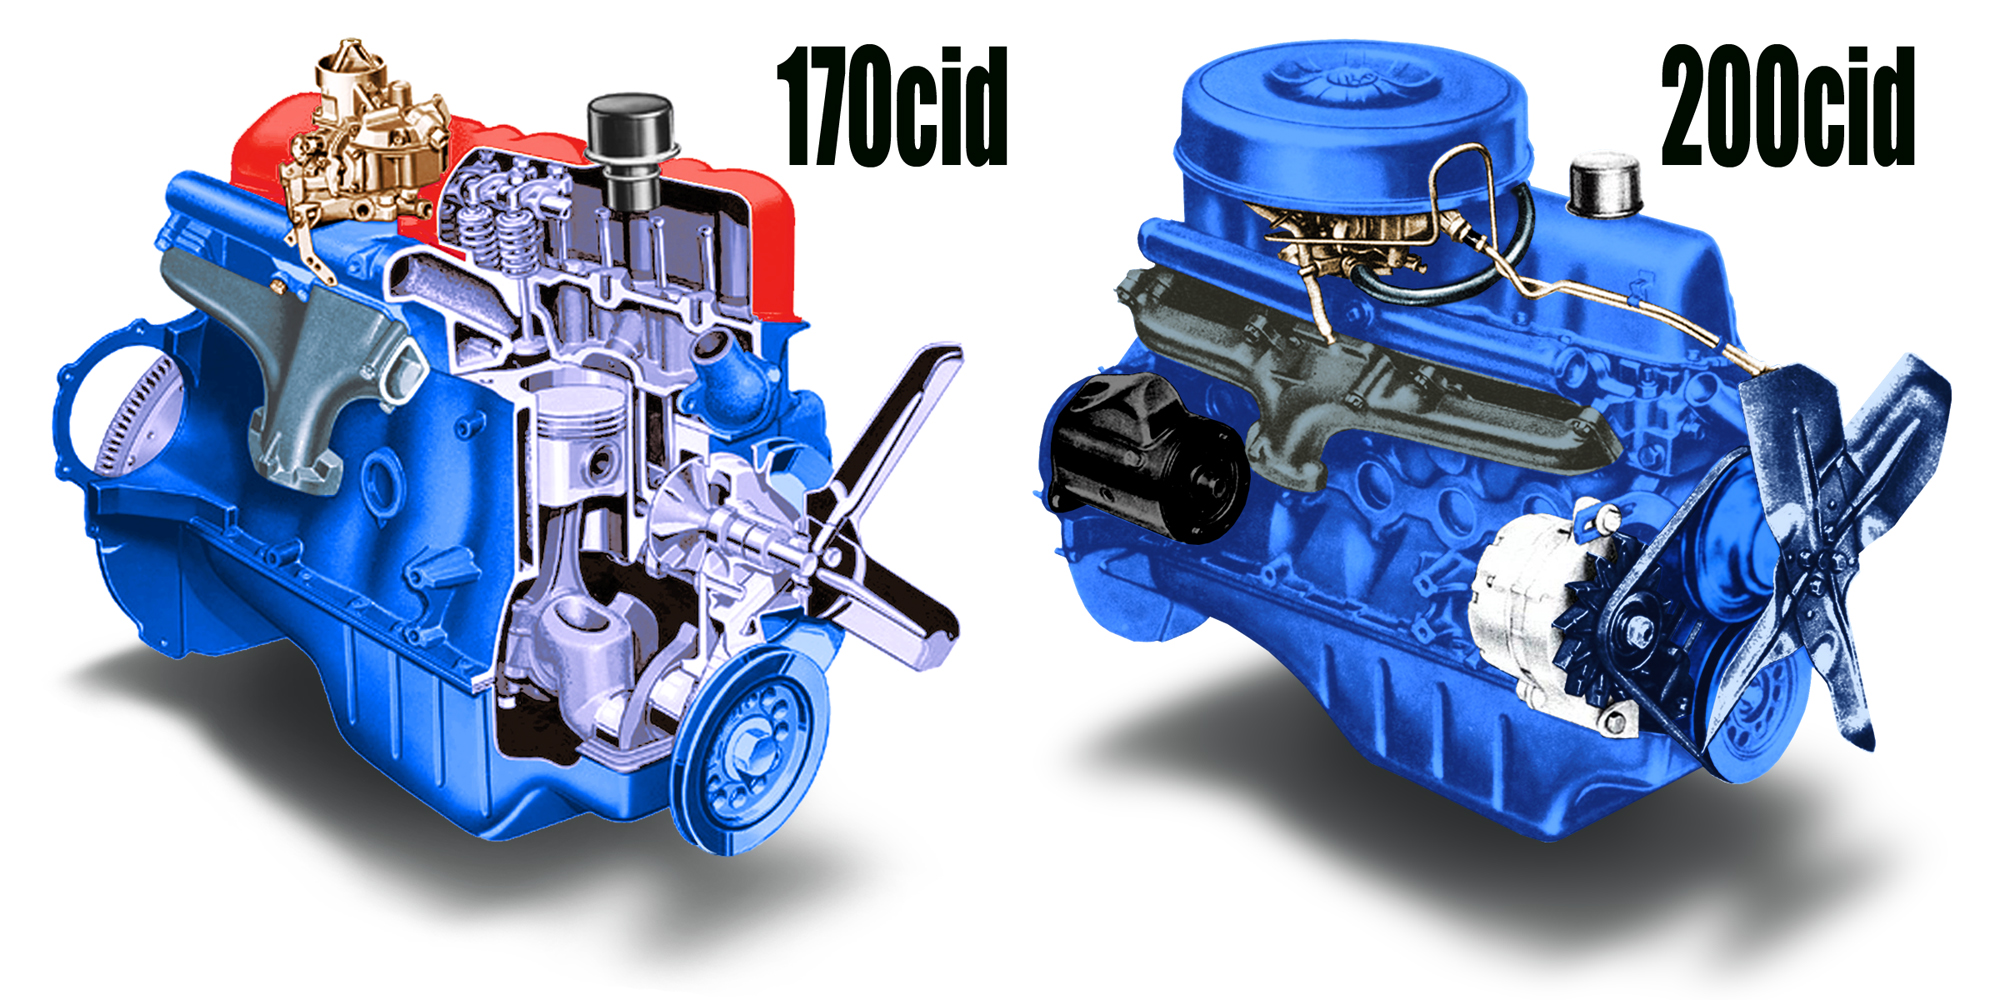 hight resolution of file ford 170 and 200cid i 6 engines jpg